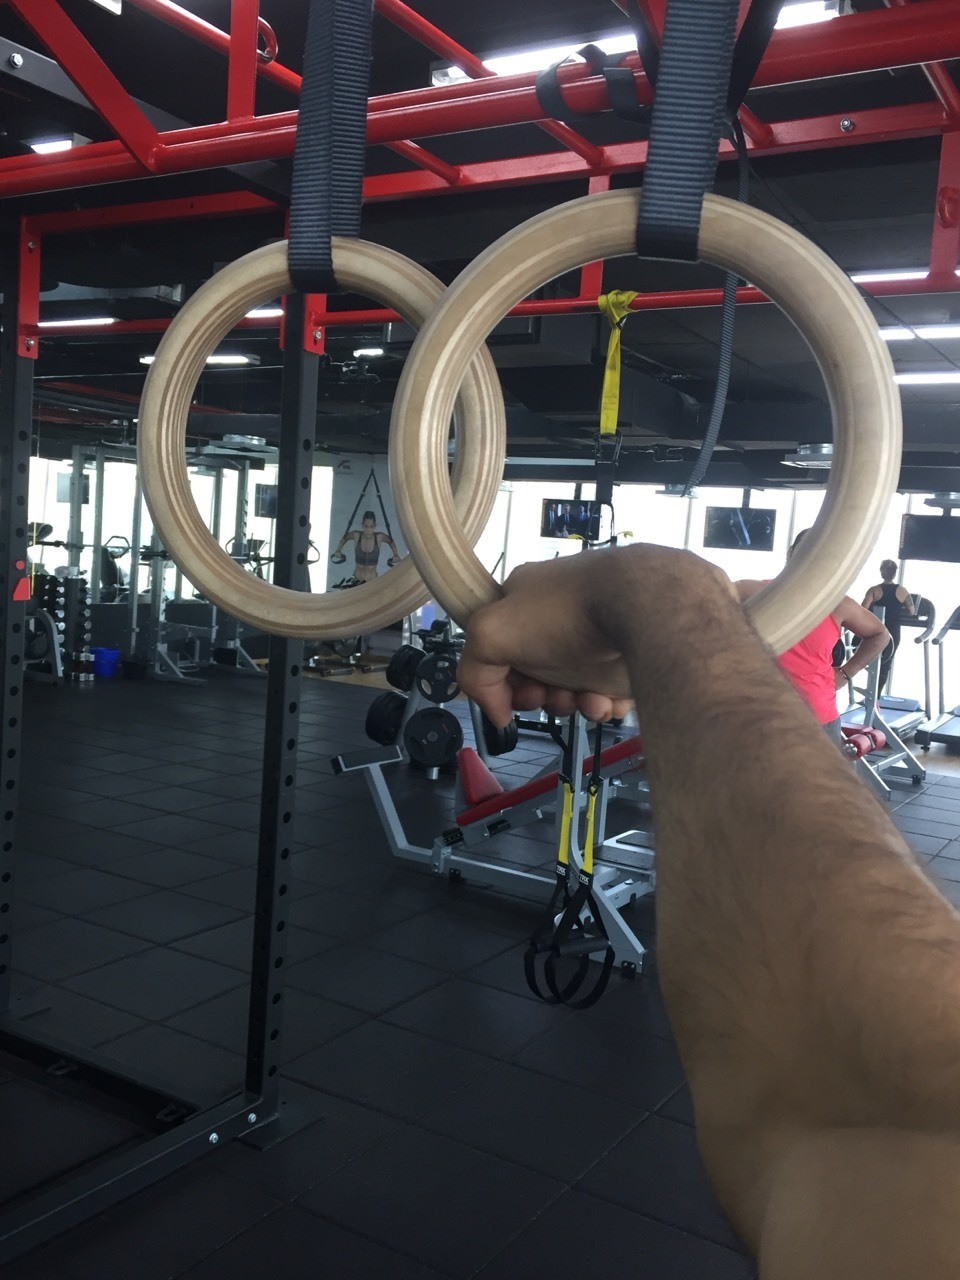 Gymnastic rings, I suggest you get these ... Helps me work on my stability while working on dips, levers, planche and many more static holds!! False grip for the muscle ups . Another thing, wooden rings are much better then the synthetic and plastic ones! So make sure you get a wooden one .